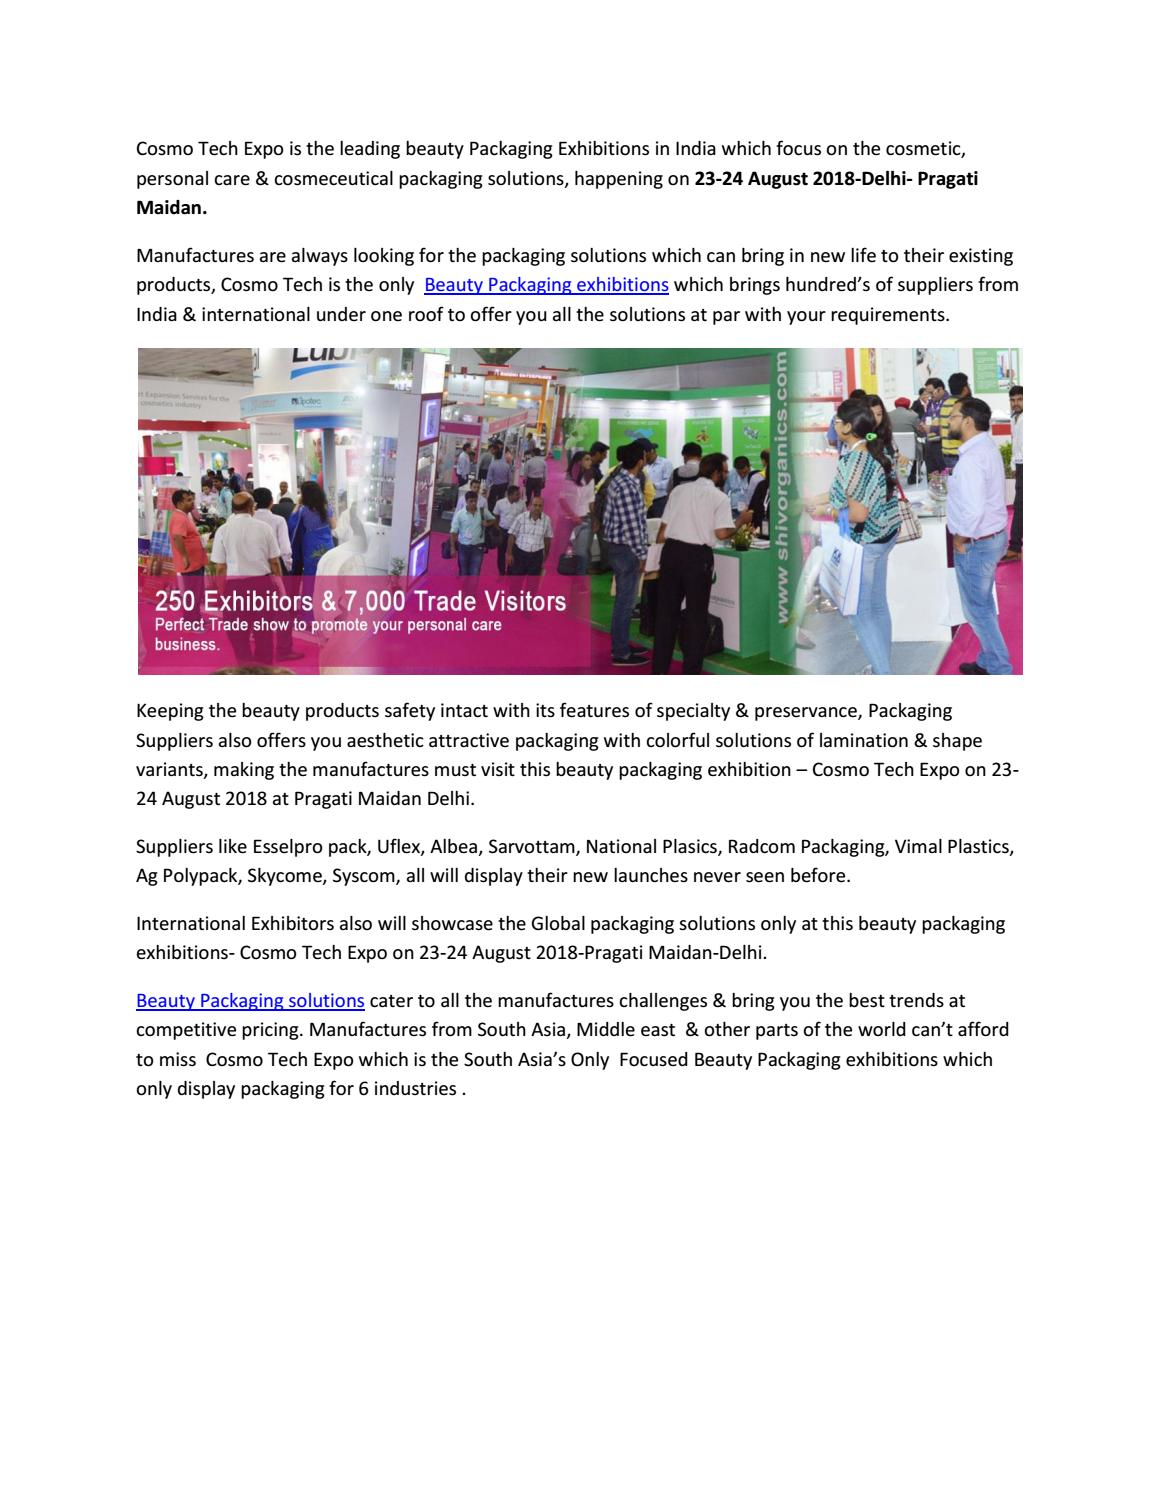 Beauty packaging exhibitions by cosmotechexpoindia - issuu